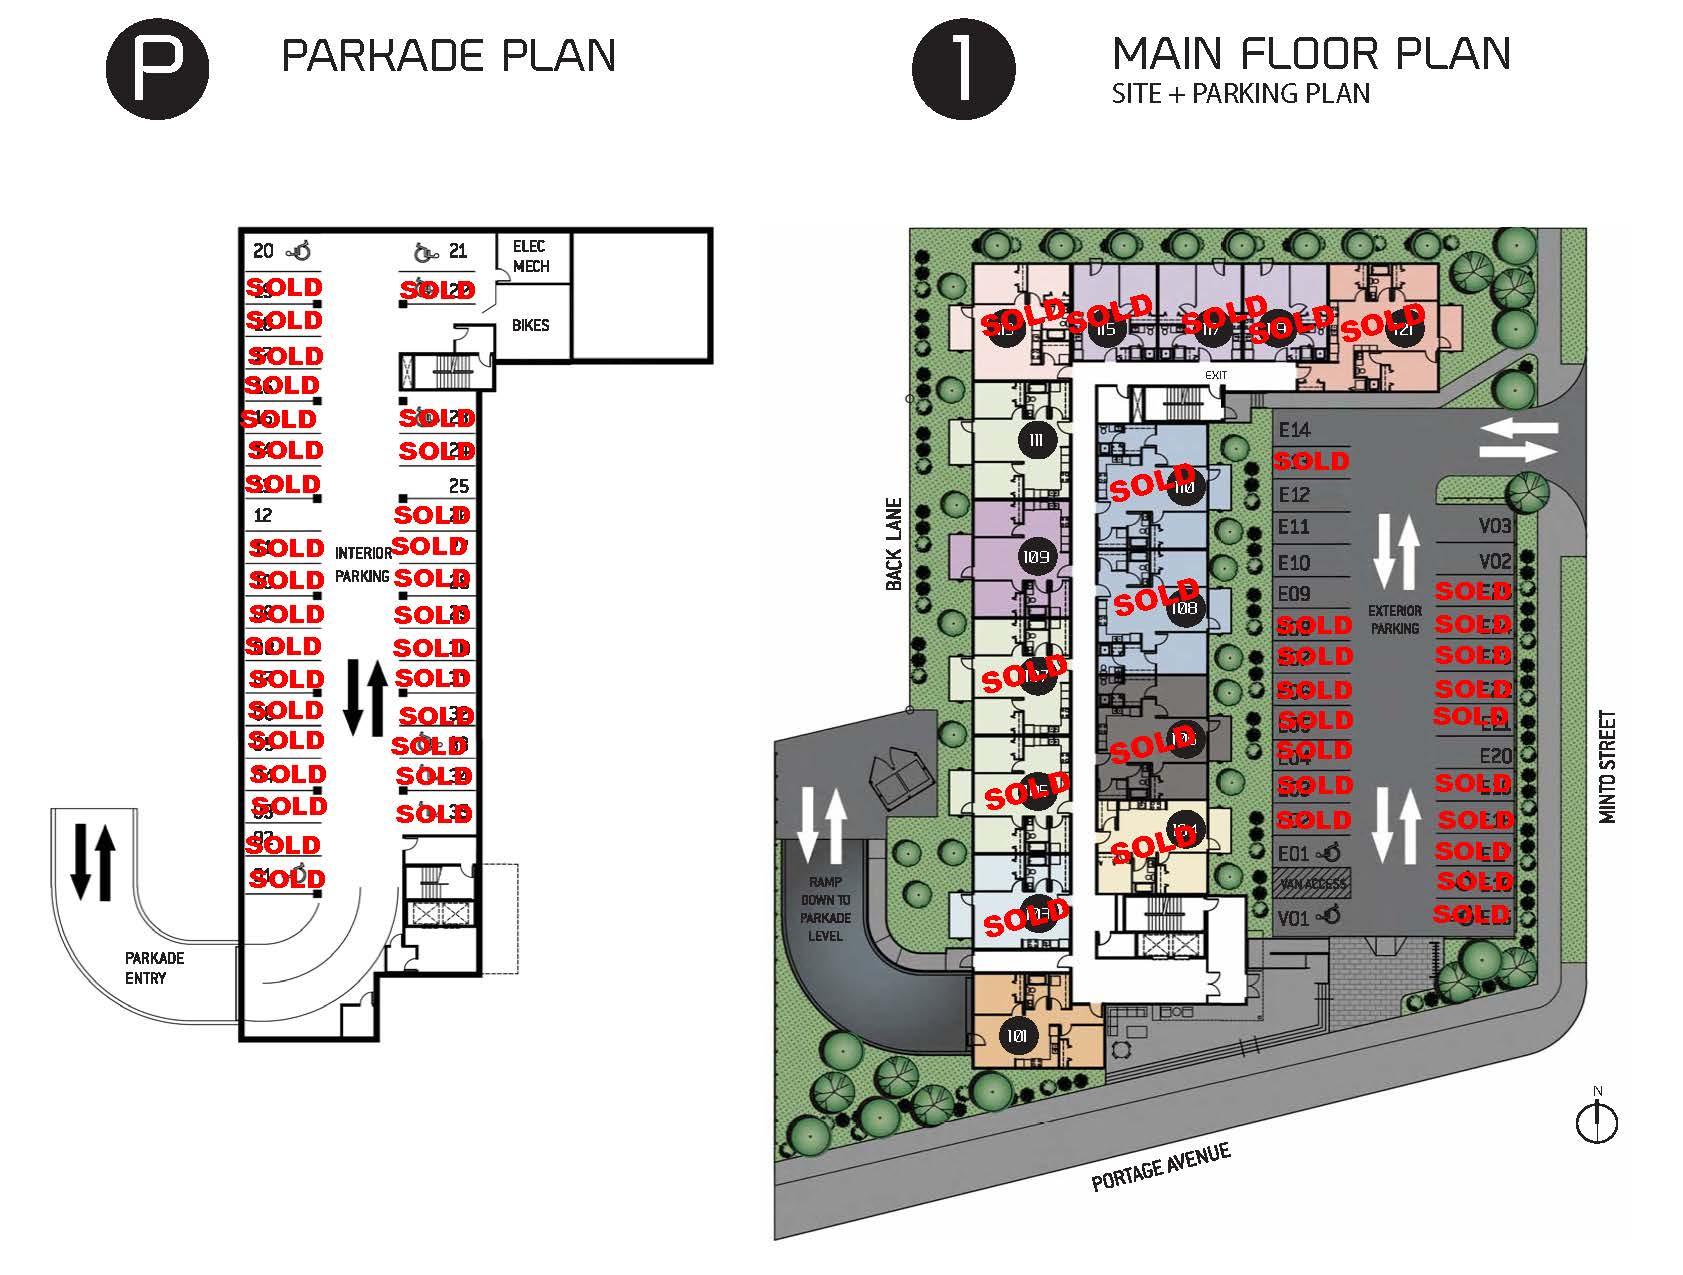 MAY09-2019_Icon Parking & Main Floor Plans.jpg